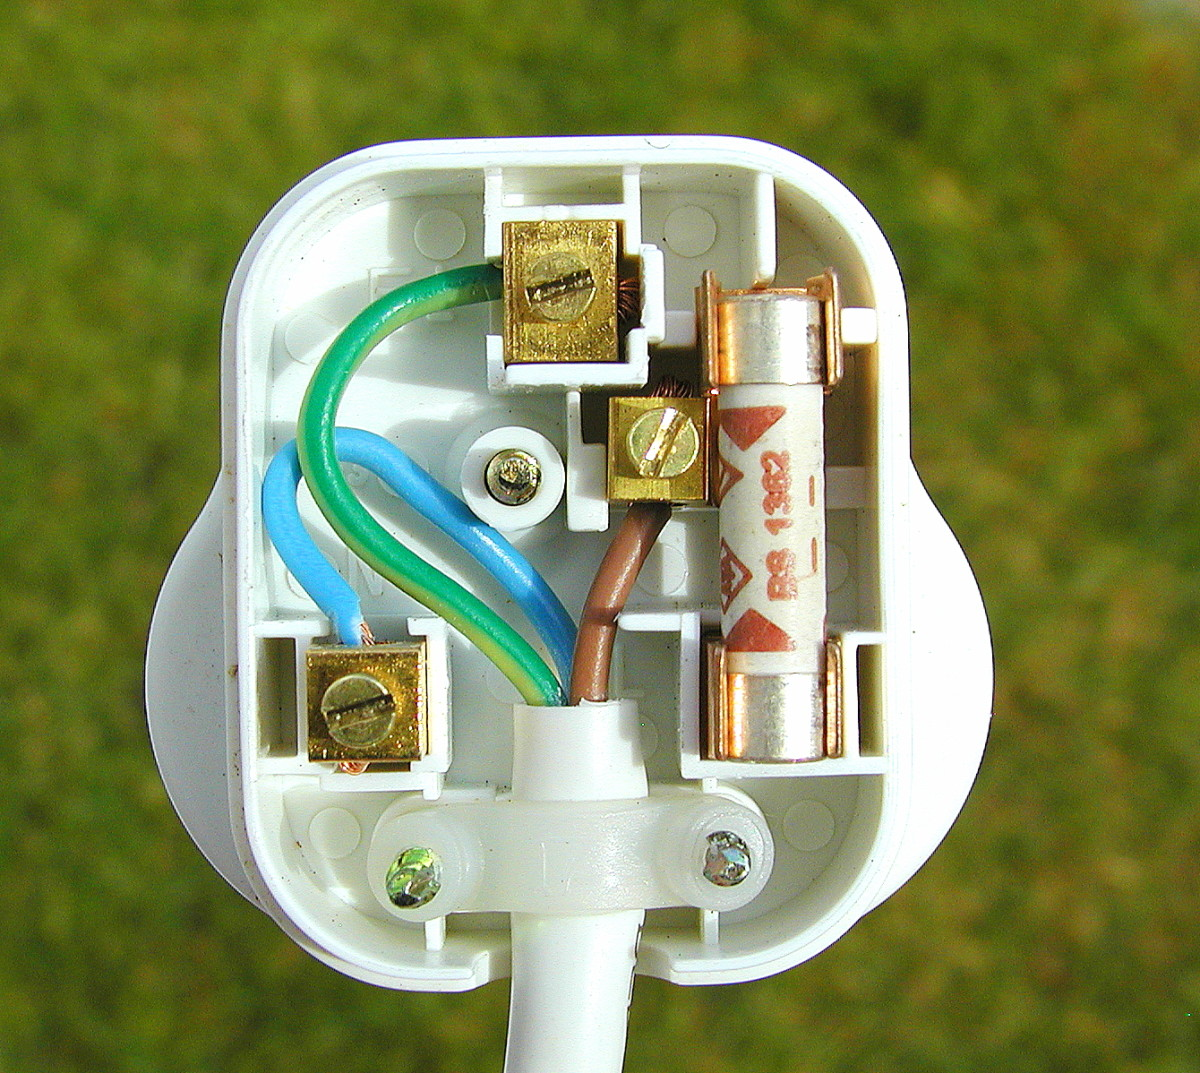 easy steps  wiring  plug correctly  safely dengarden